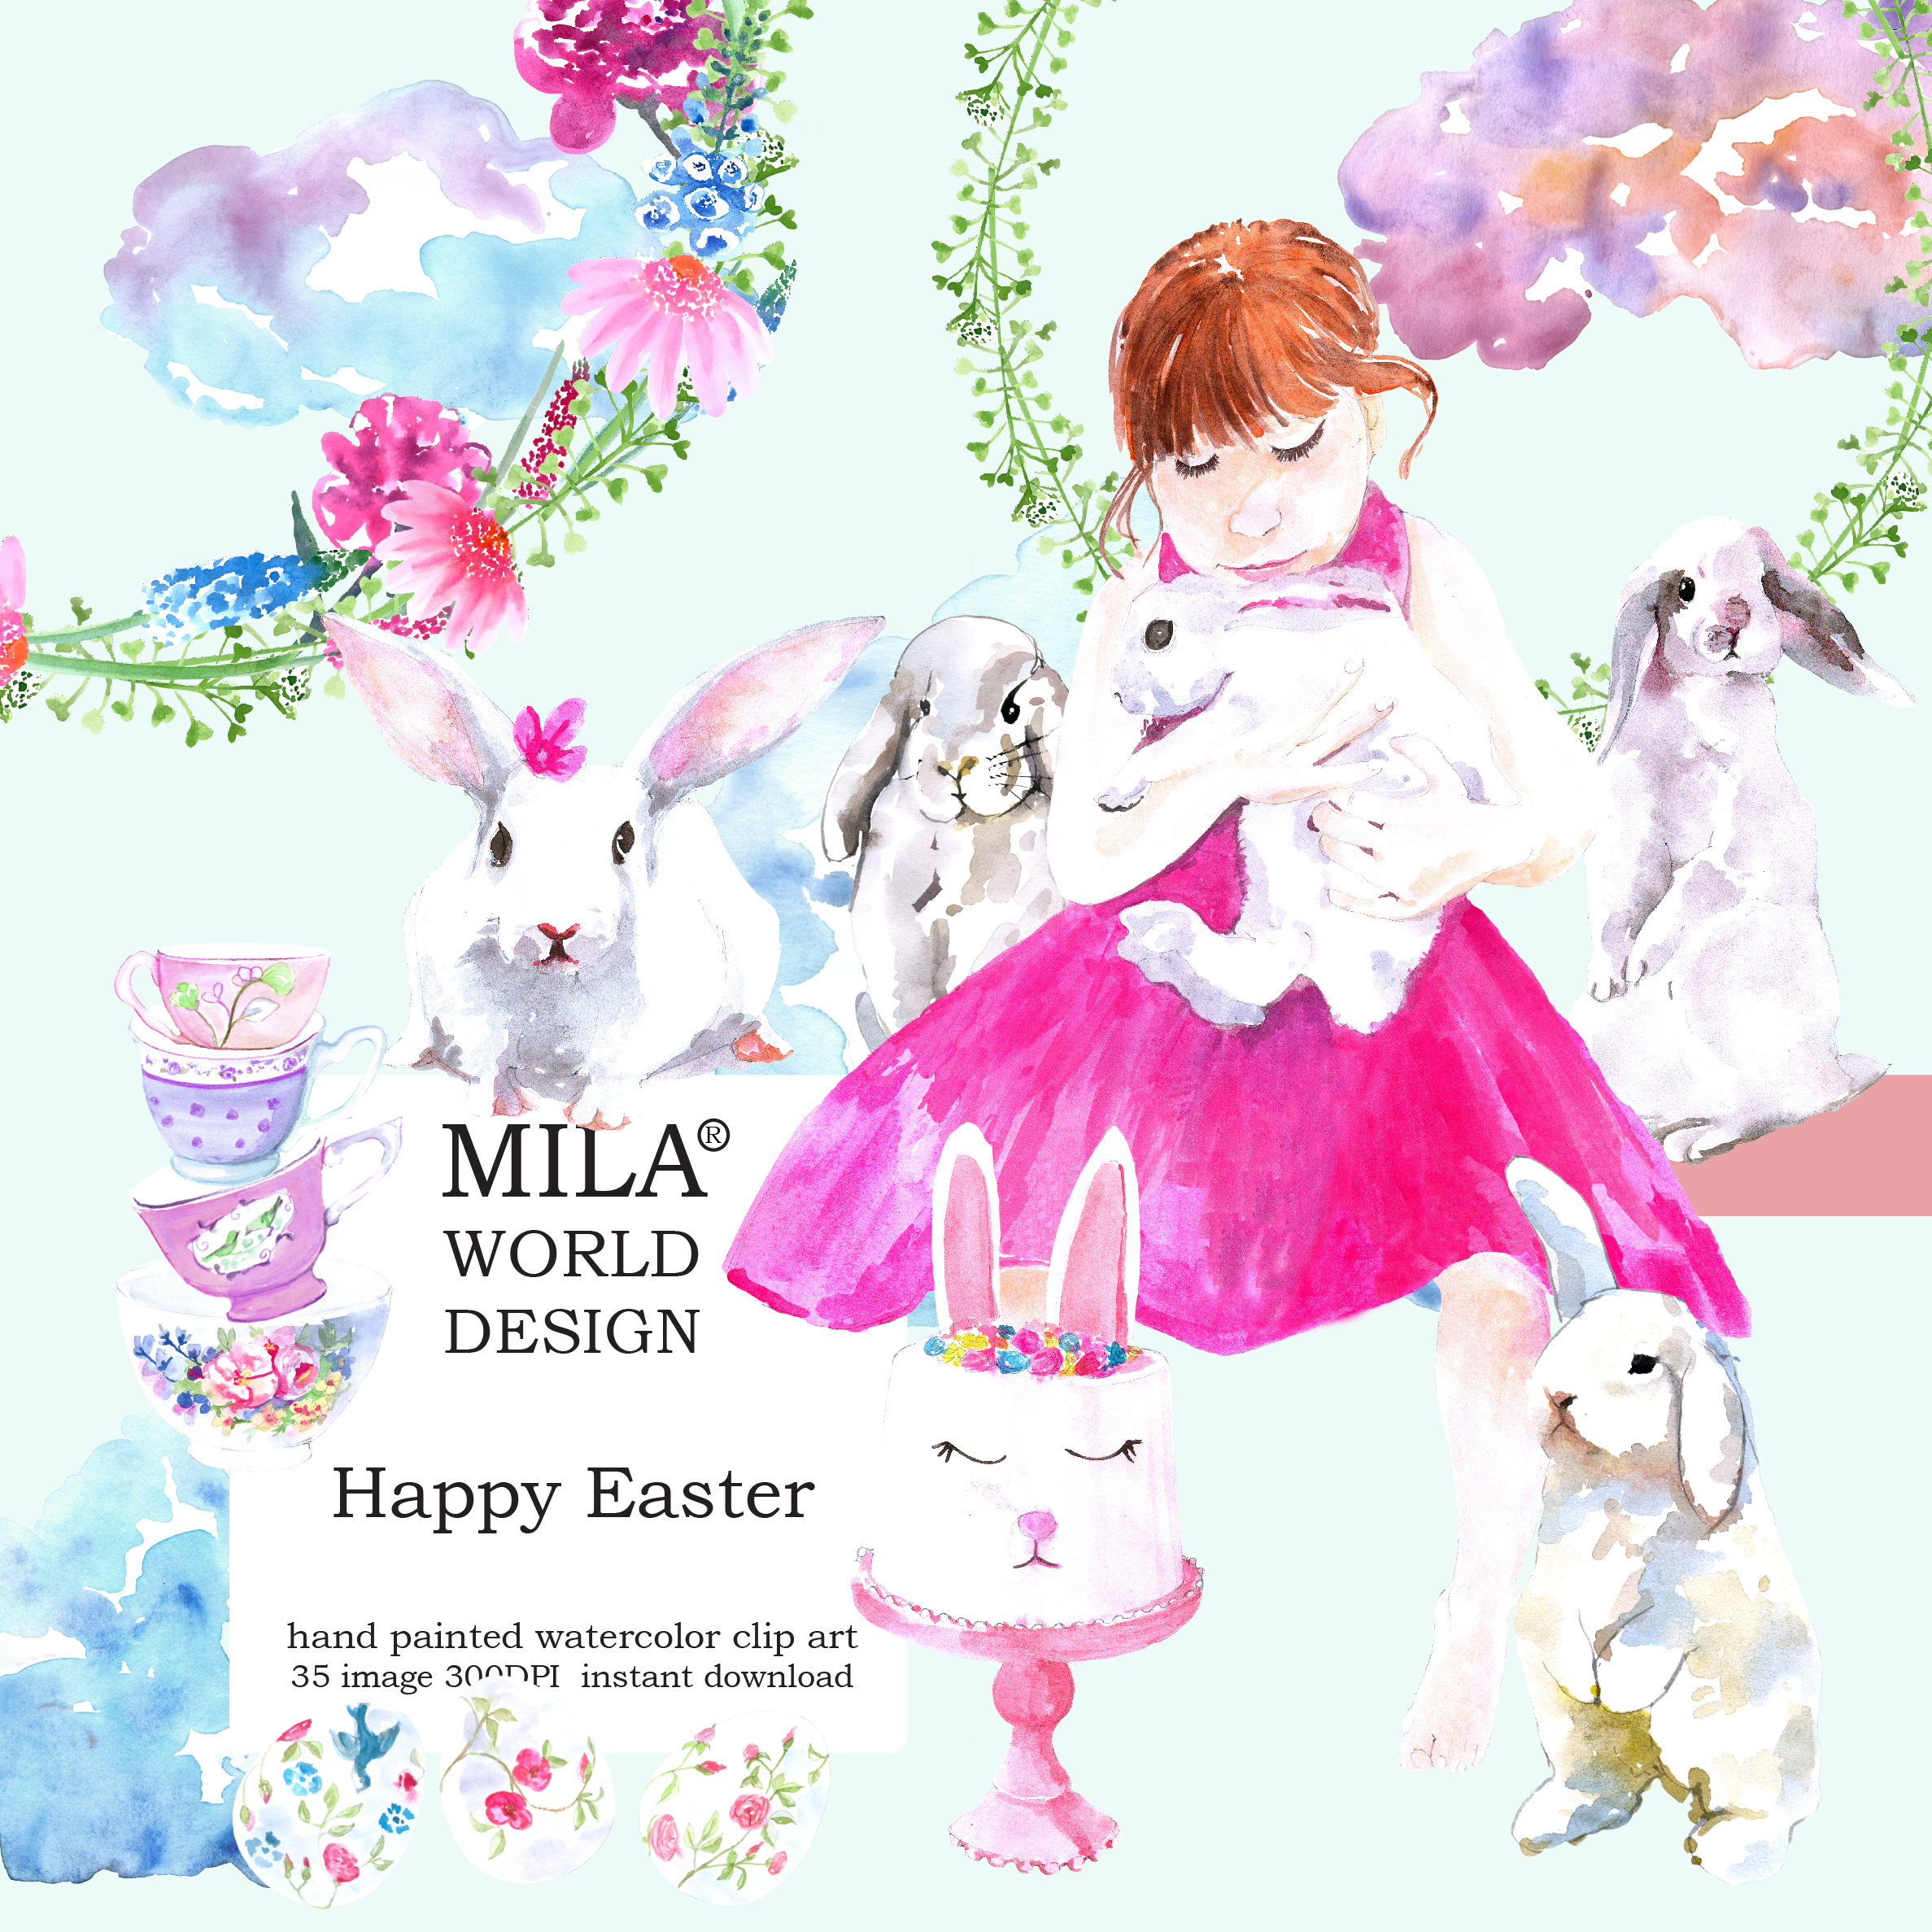 Watercolor Easter clipart example image 1